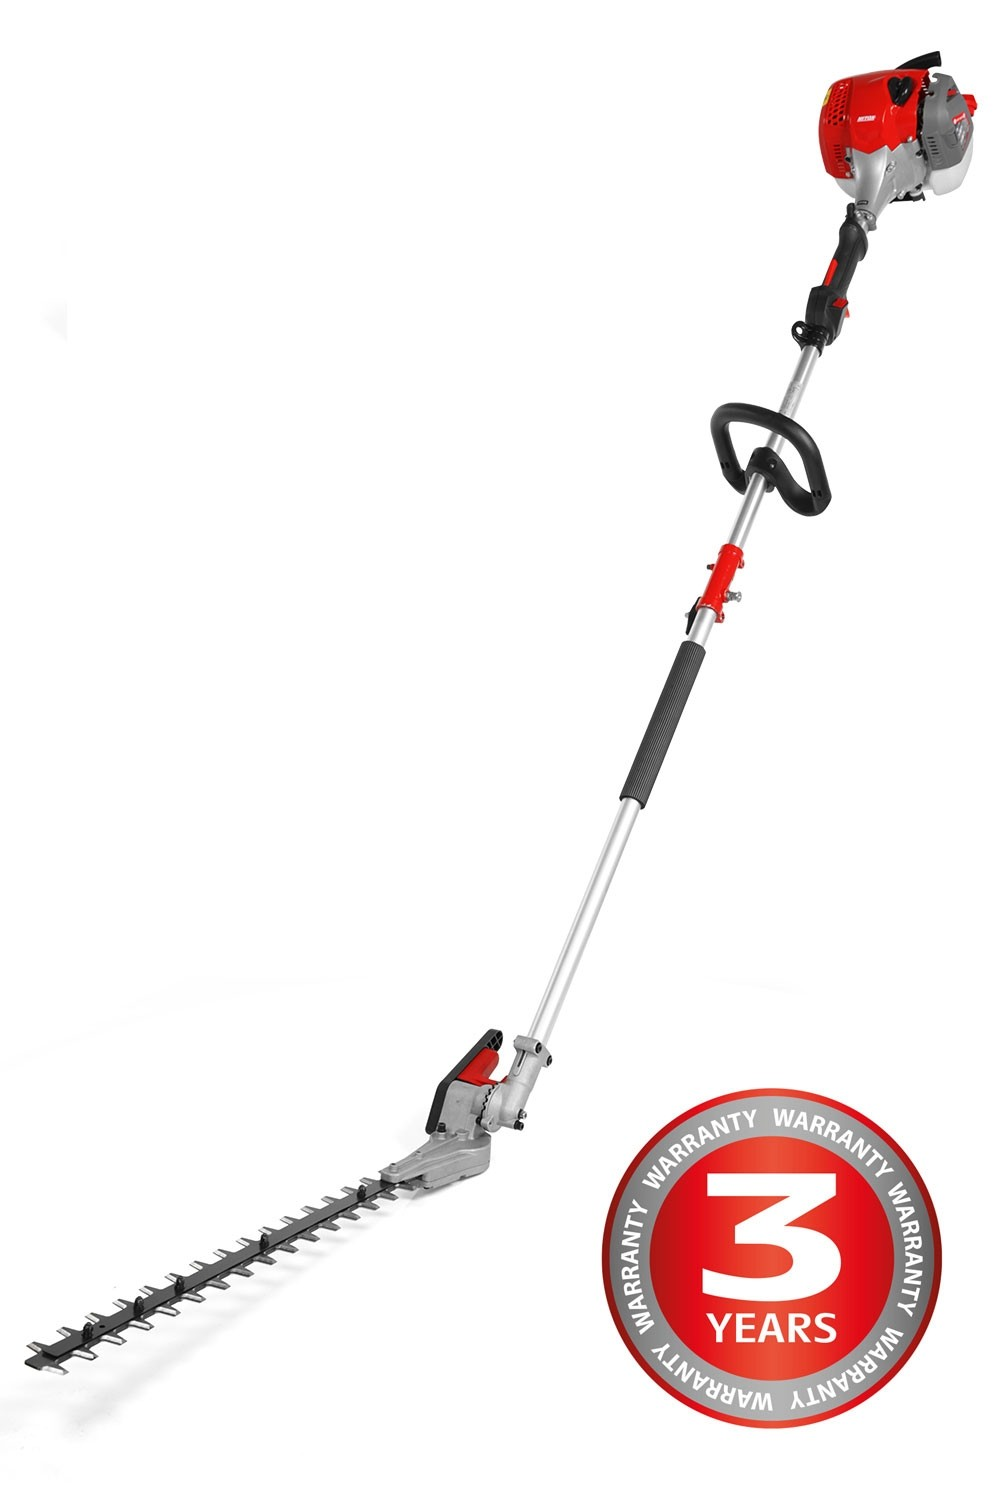 Mitox 28LH Long reach petrol hedge trimmer